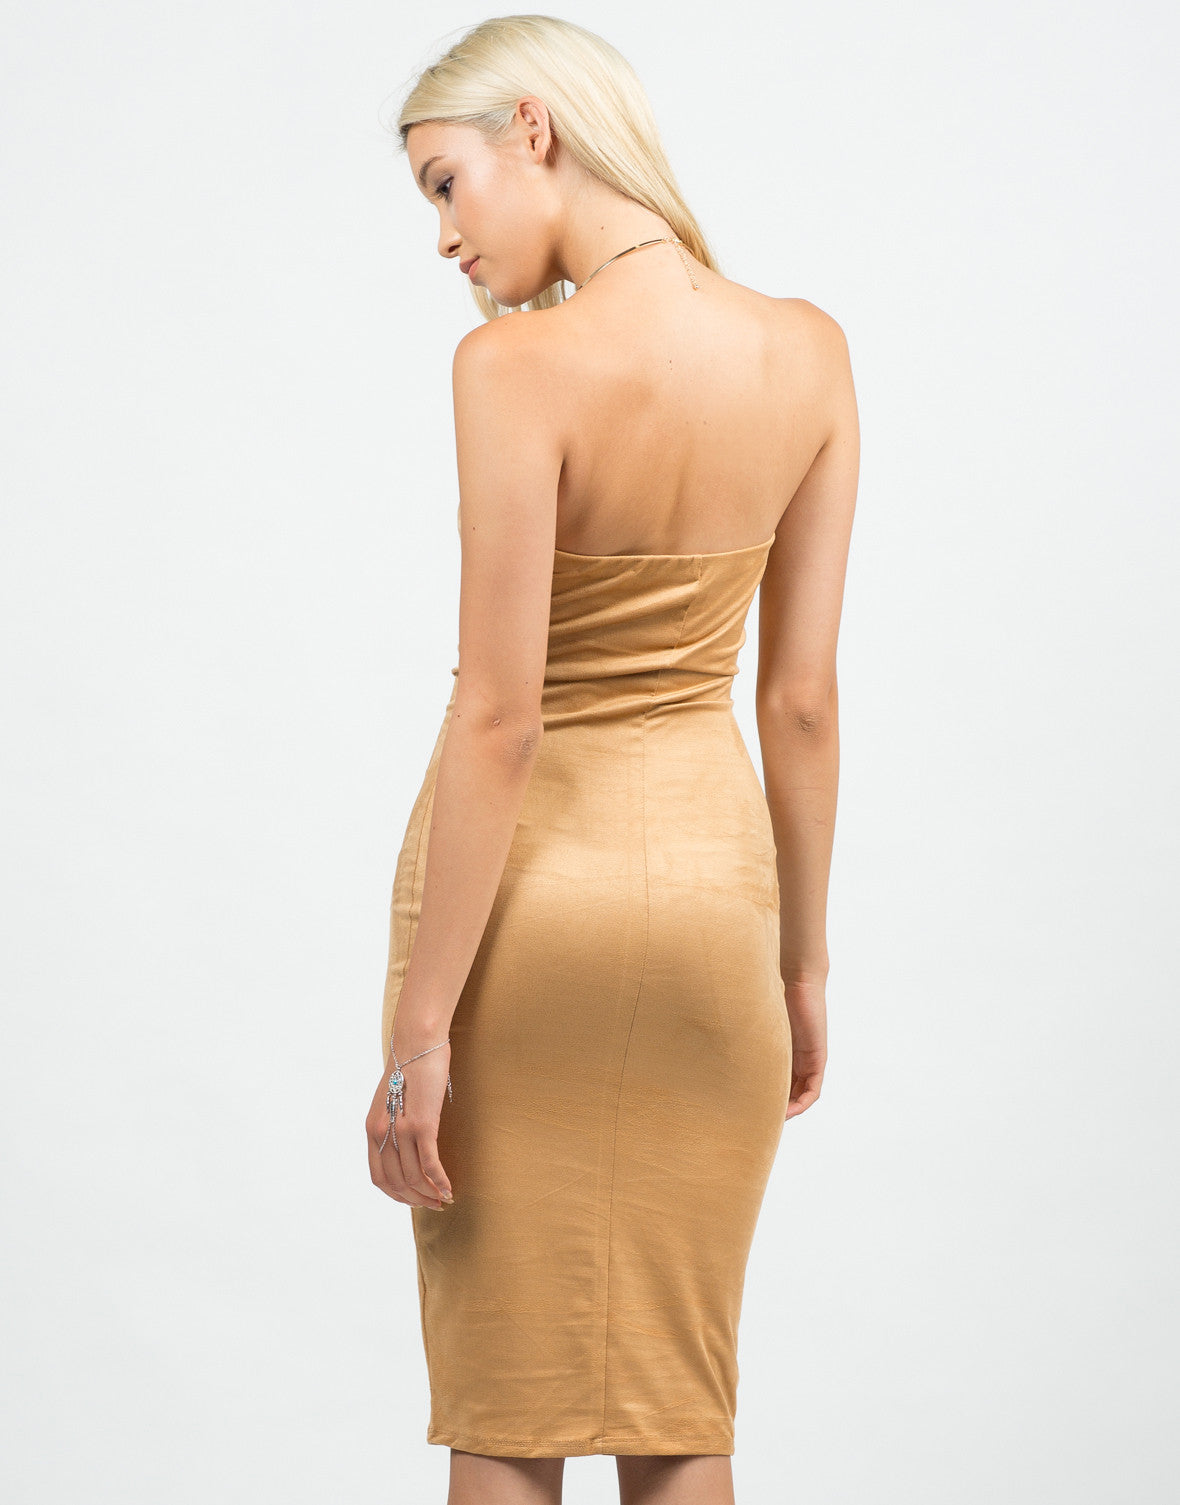 Back View of Strapless Suede Midi Dress